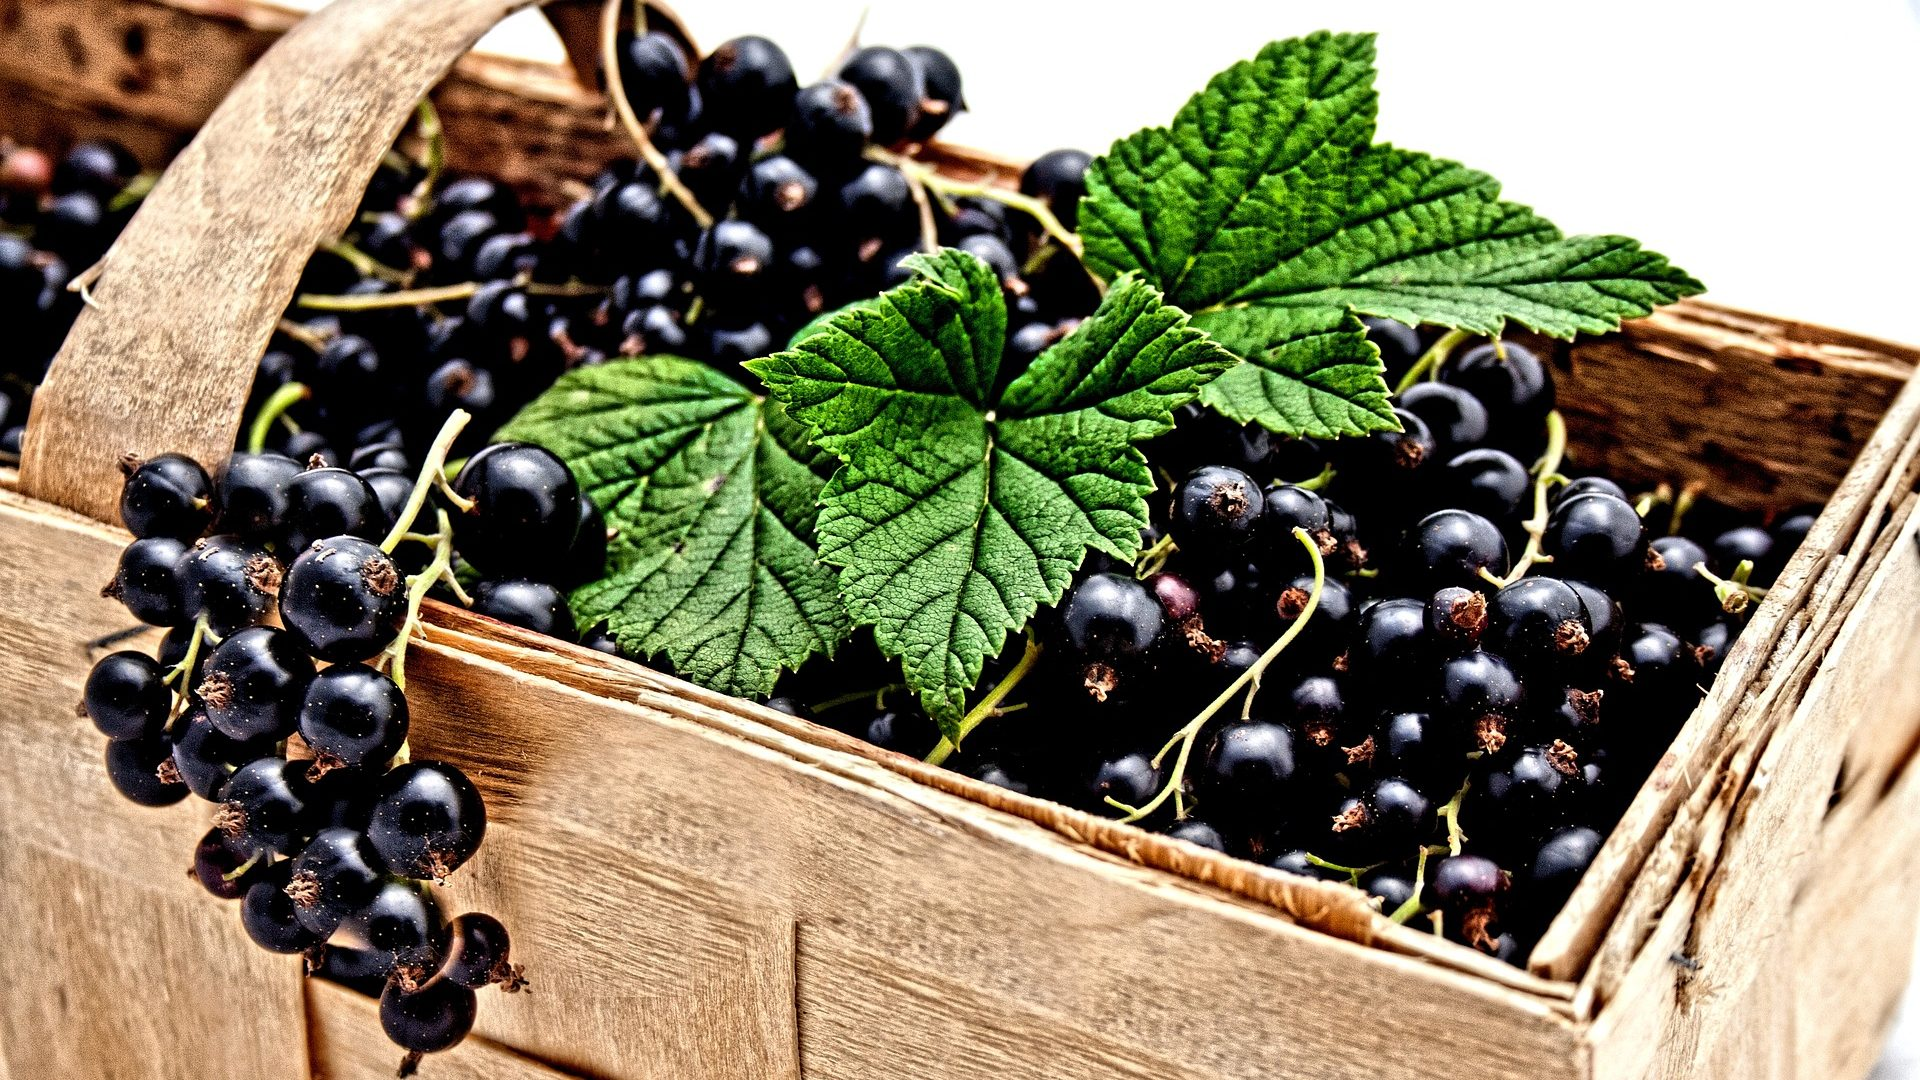 blackcurrant-2105600_1920